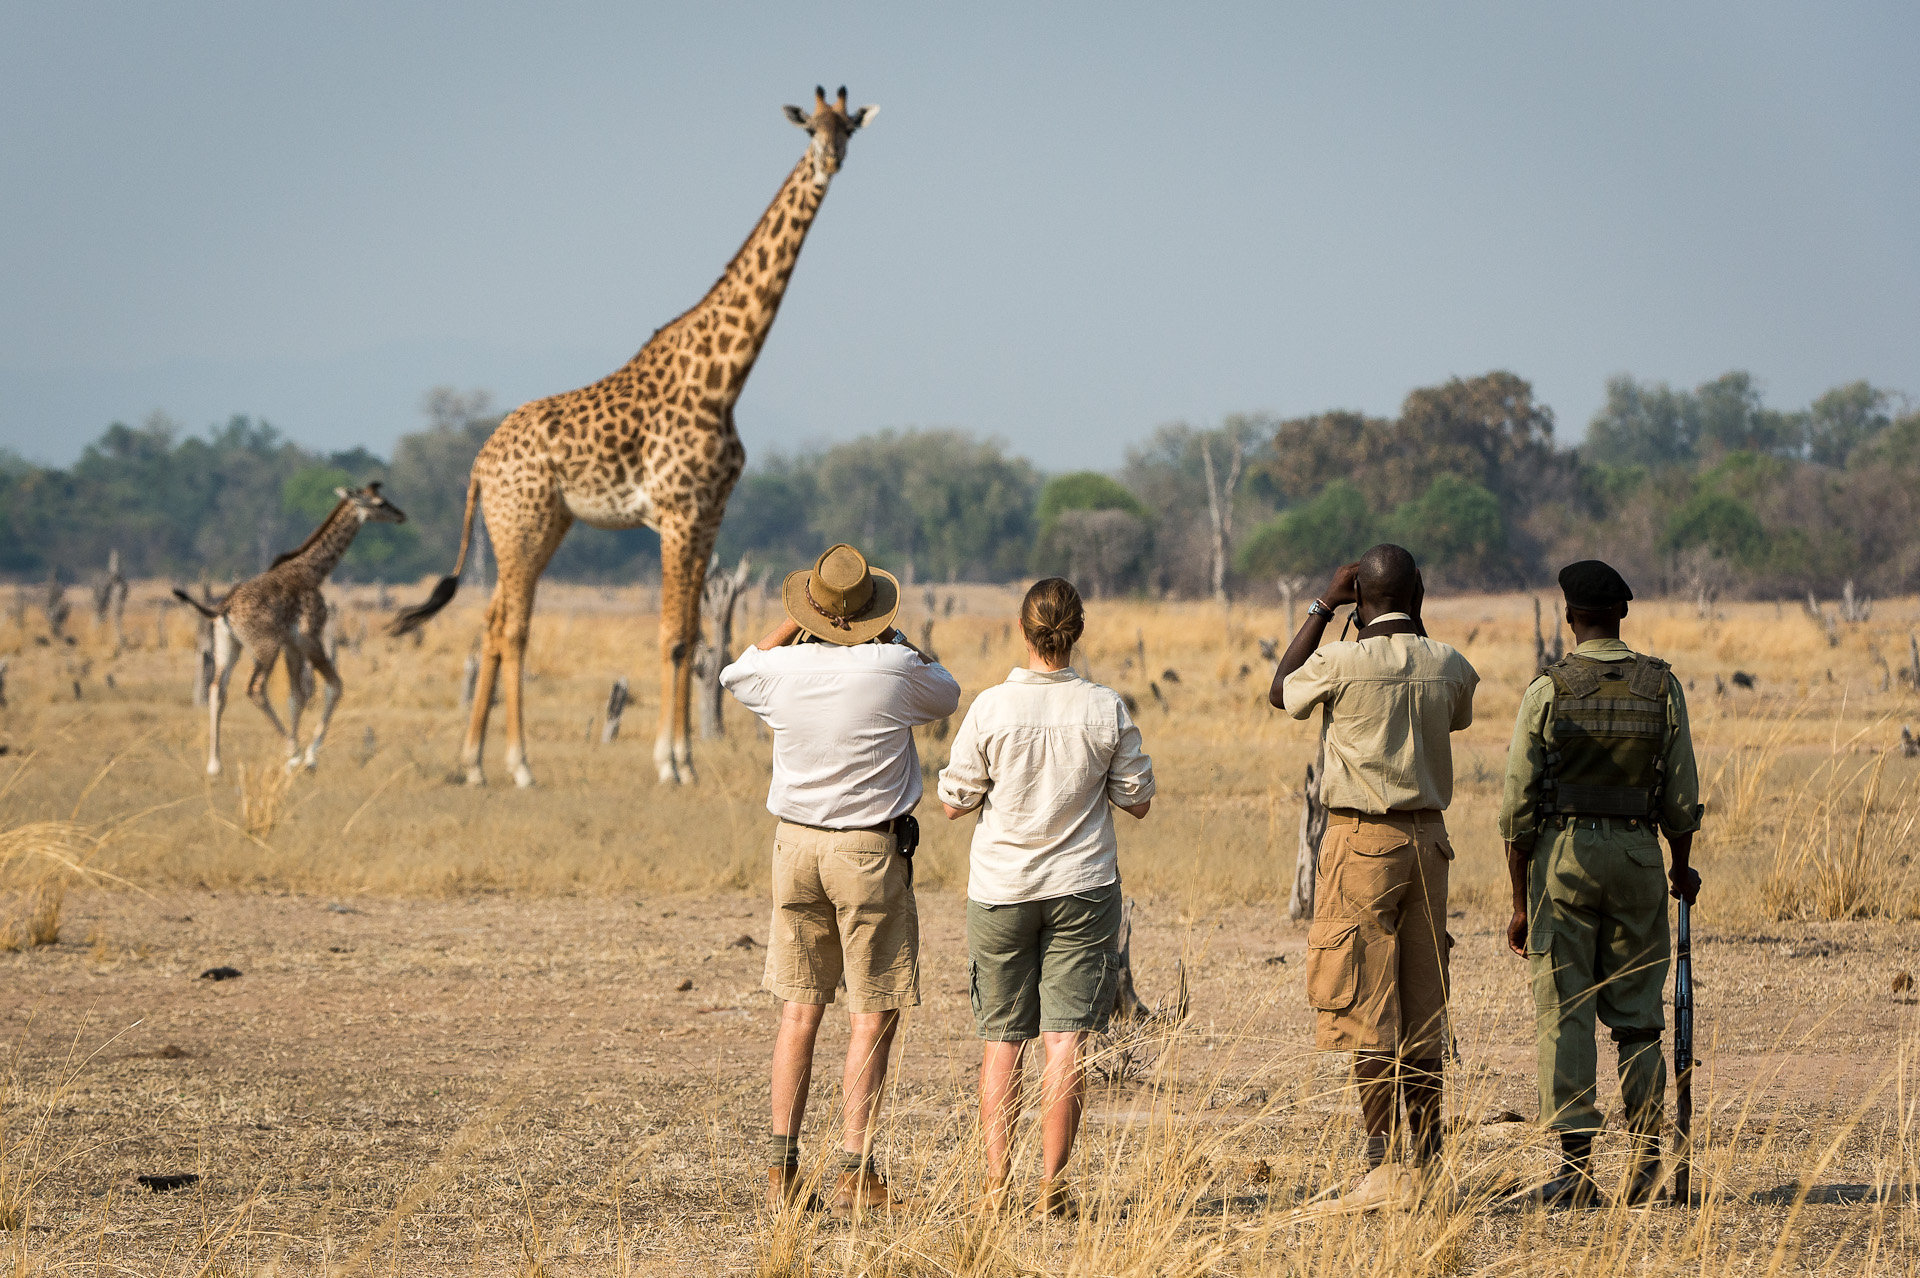 zambia walking safaris - adventurer